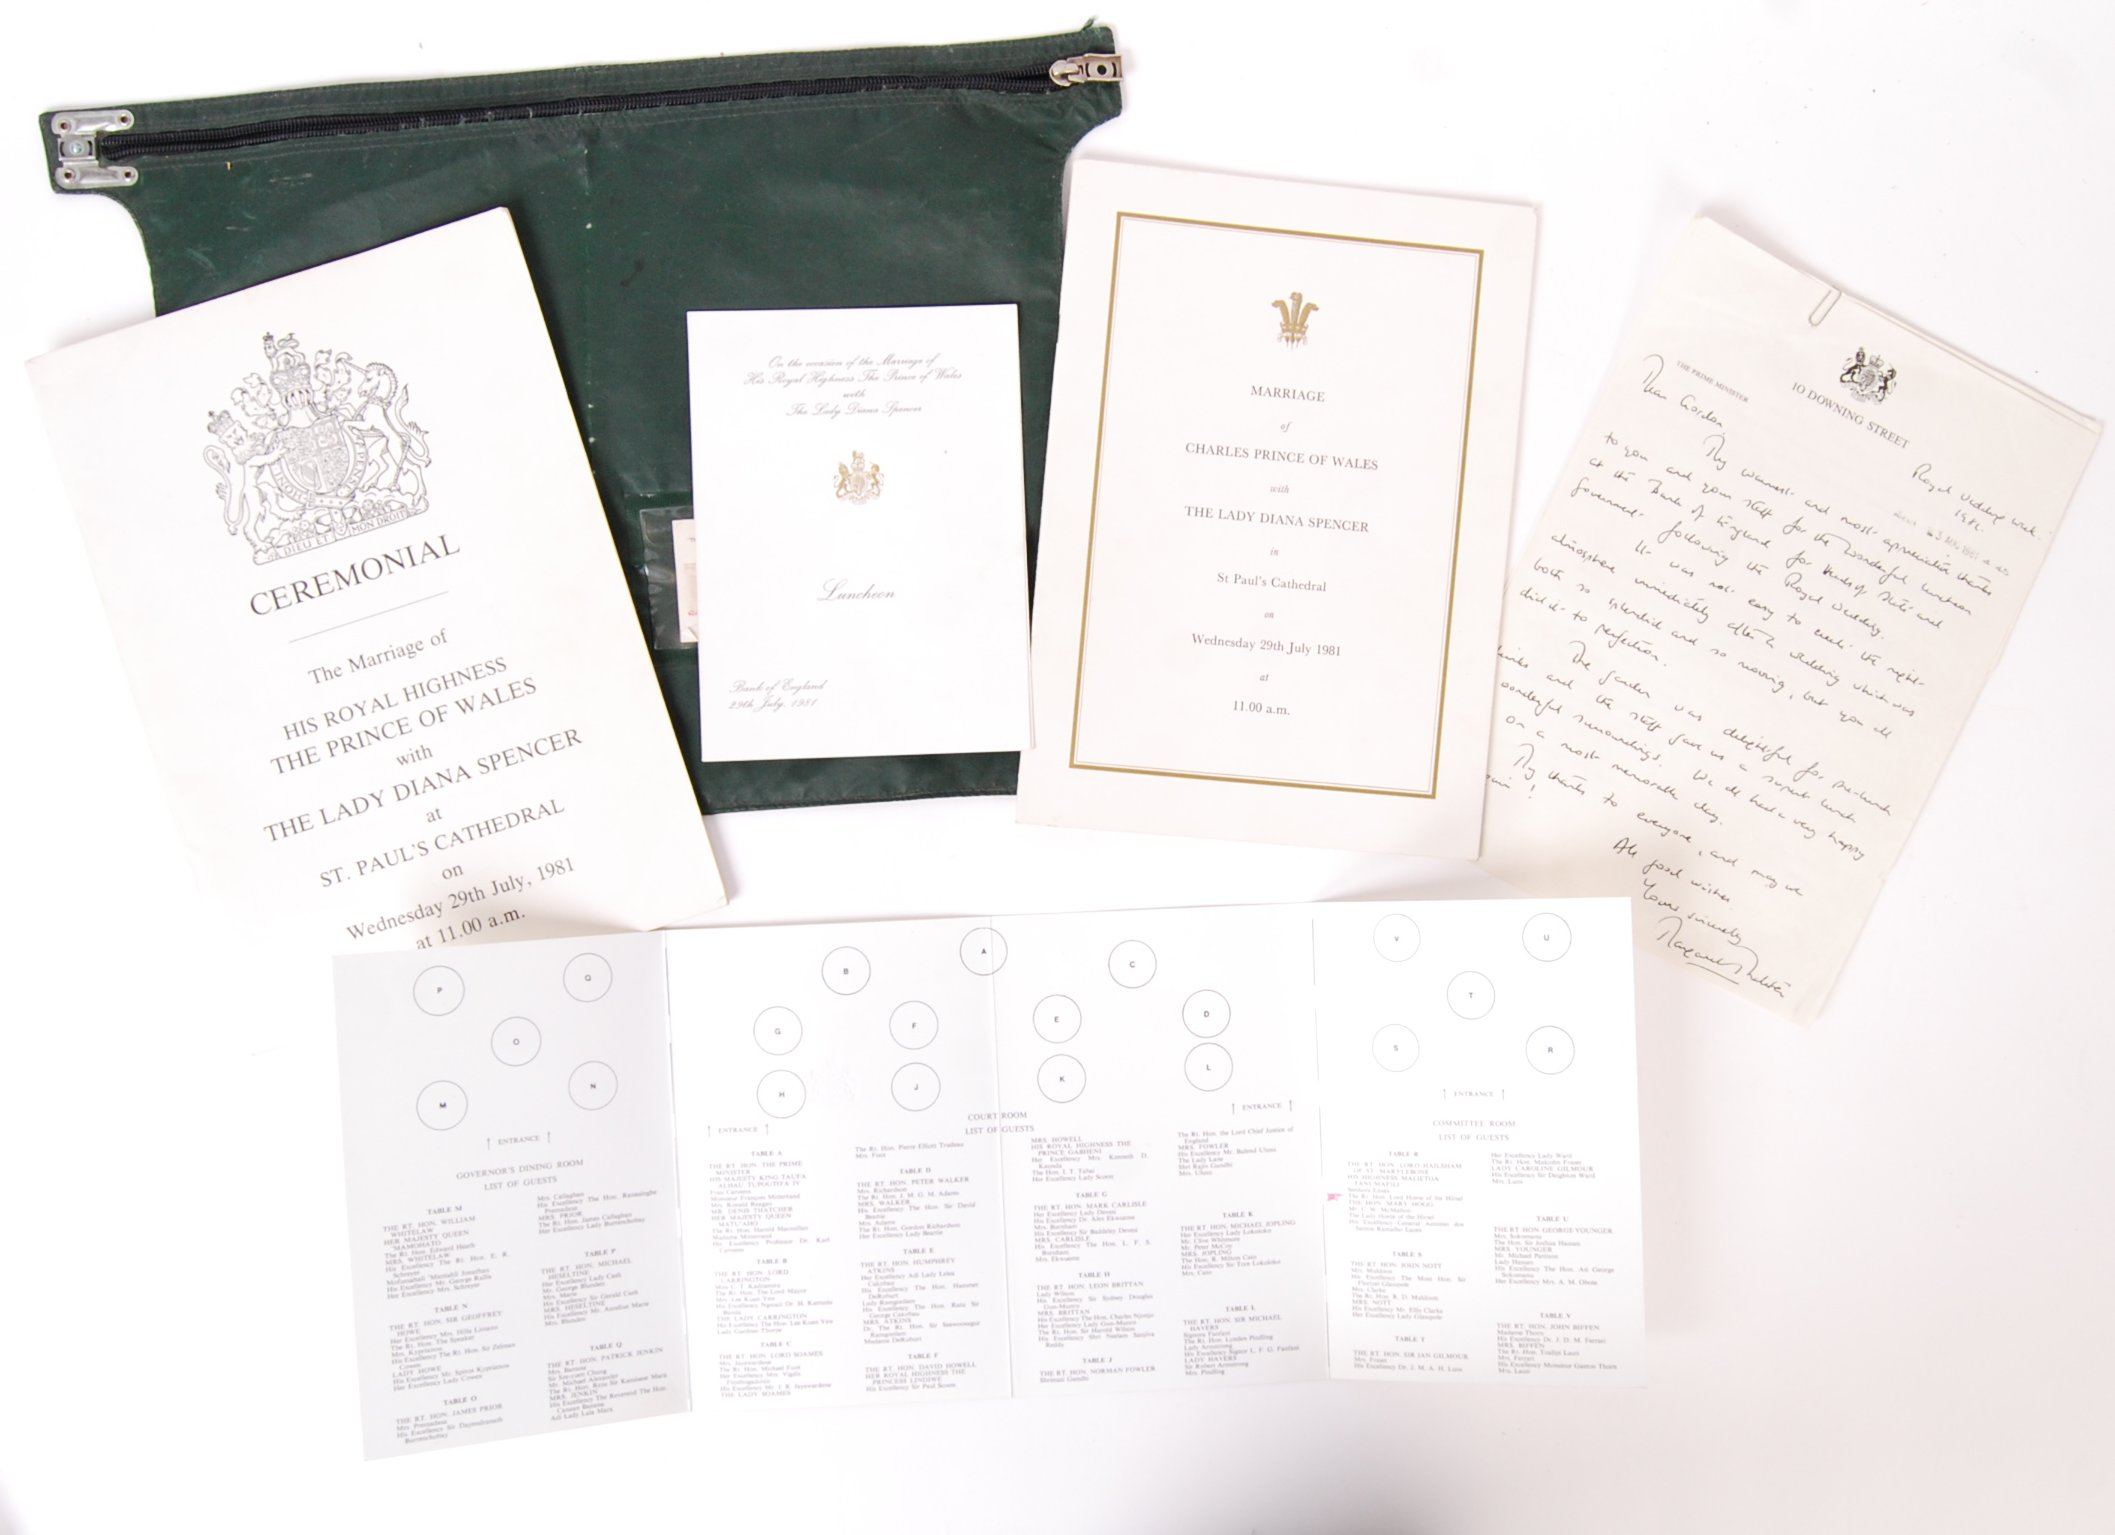 MARRIAGE OF THE PRINCE OF WALES & LADY DIANA SPENCER WEDDING EPHEMERA